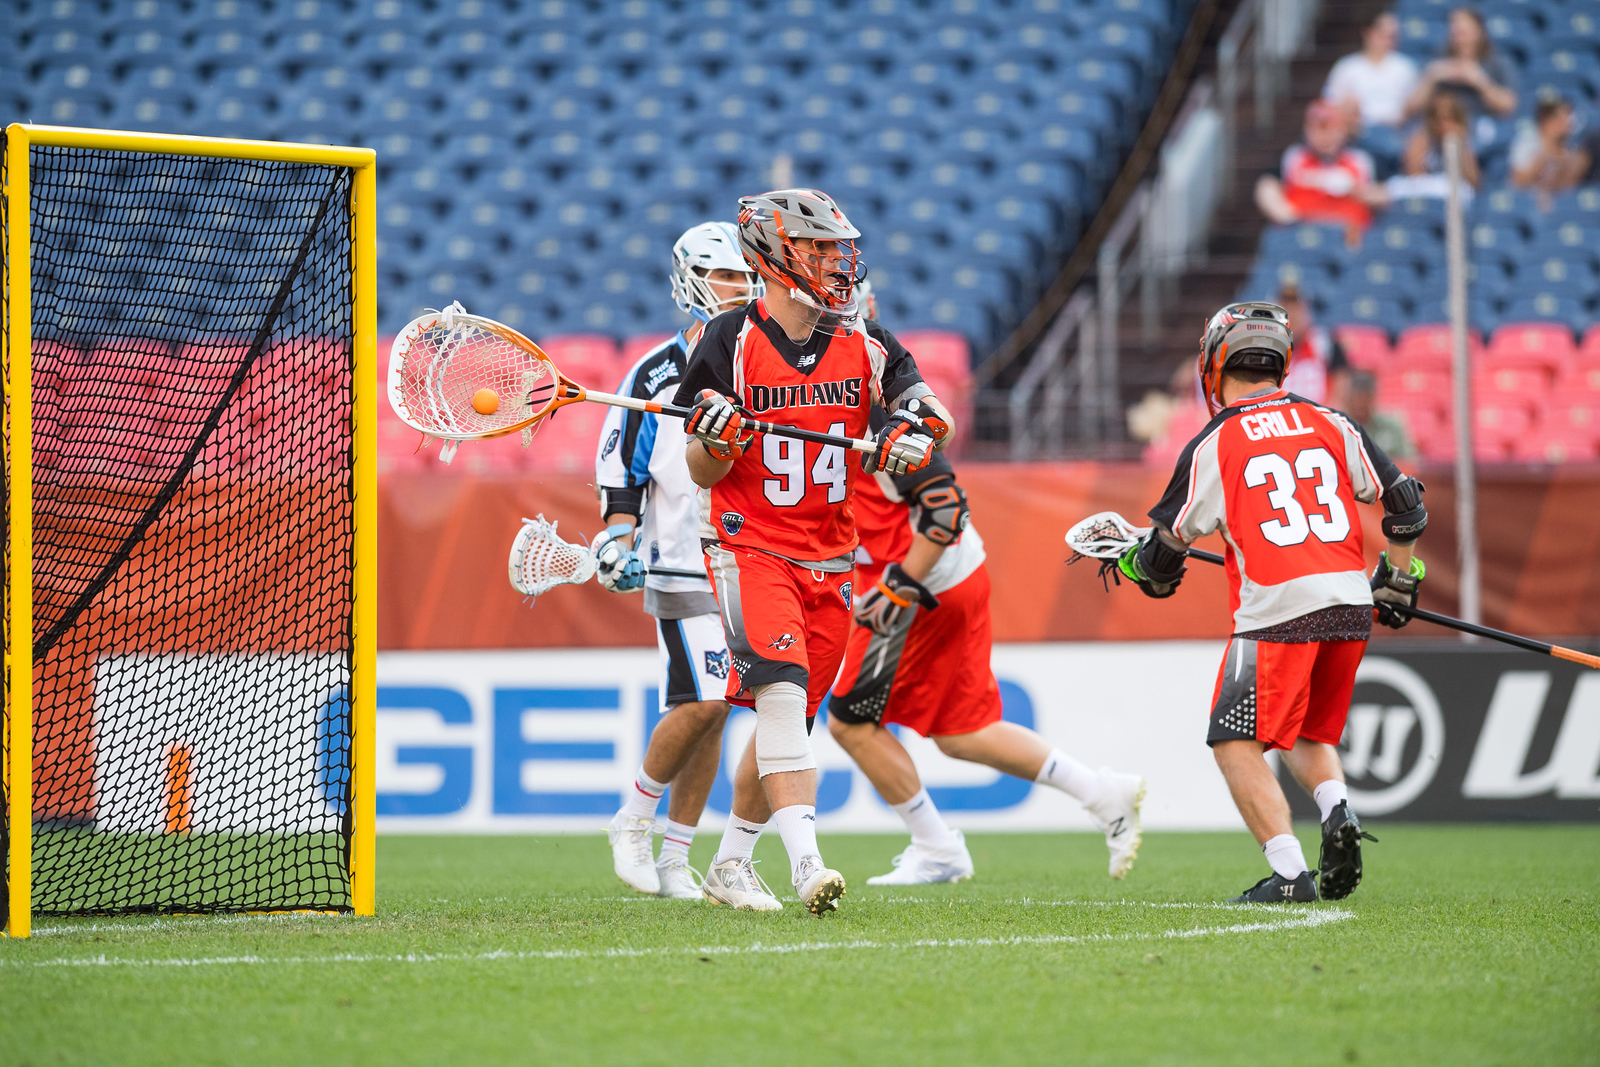 MLL: Ohio Machine @ Denver Outlaws